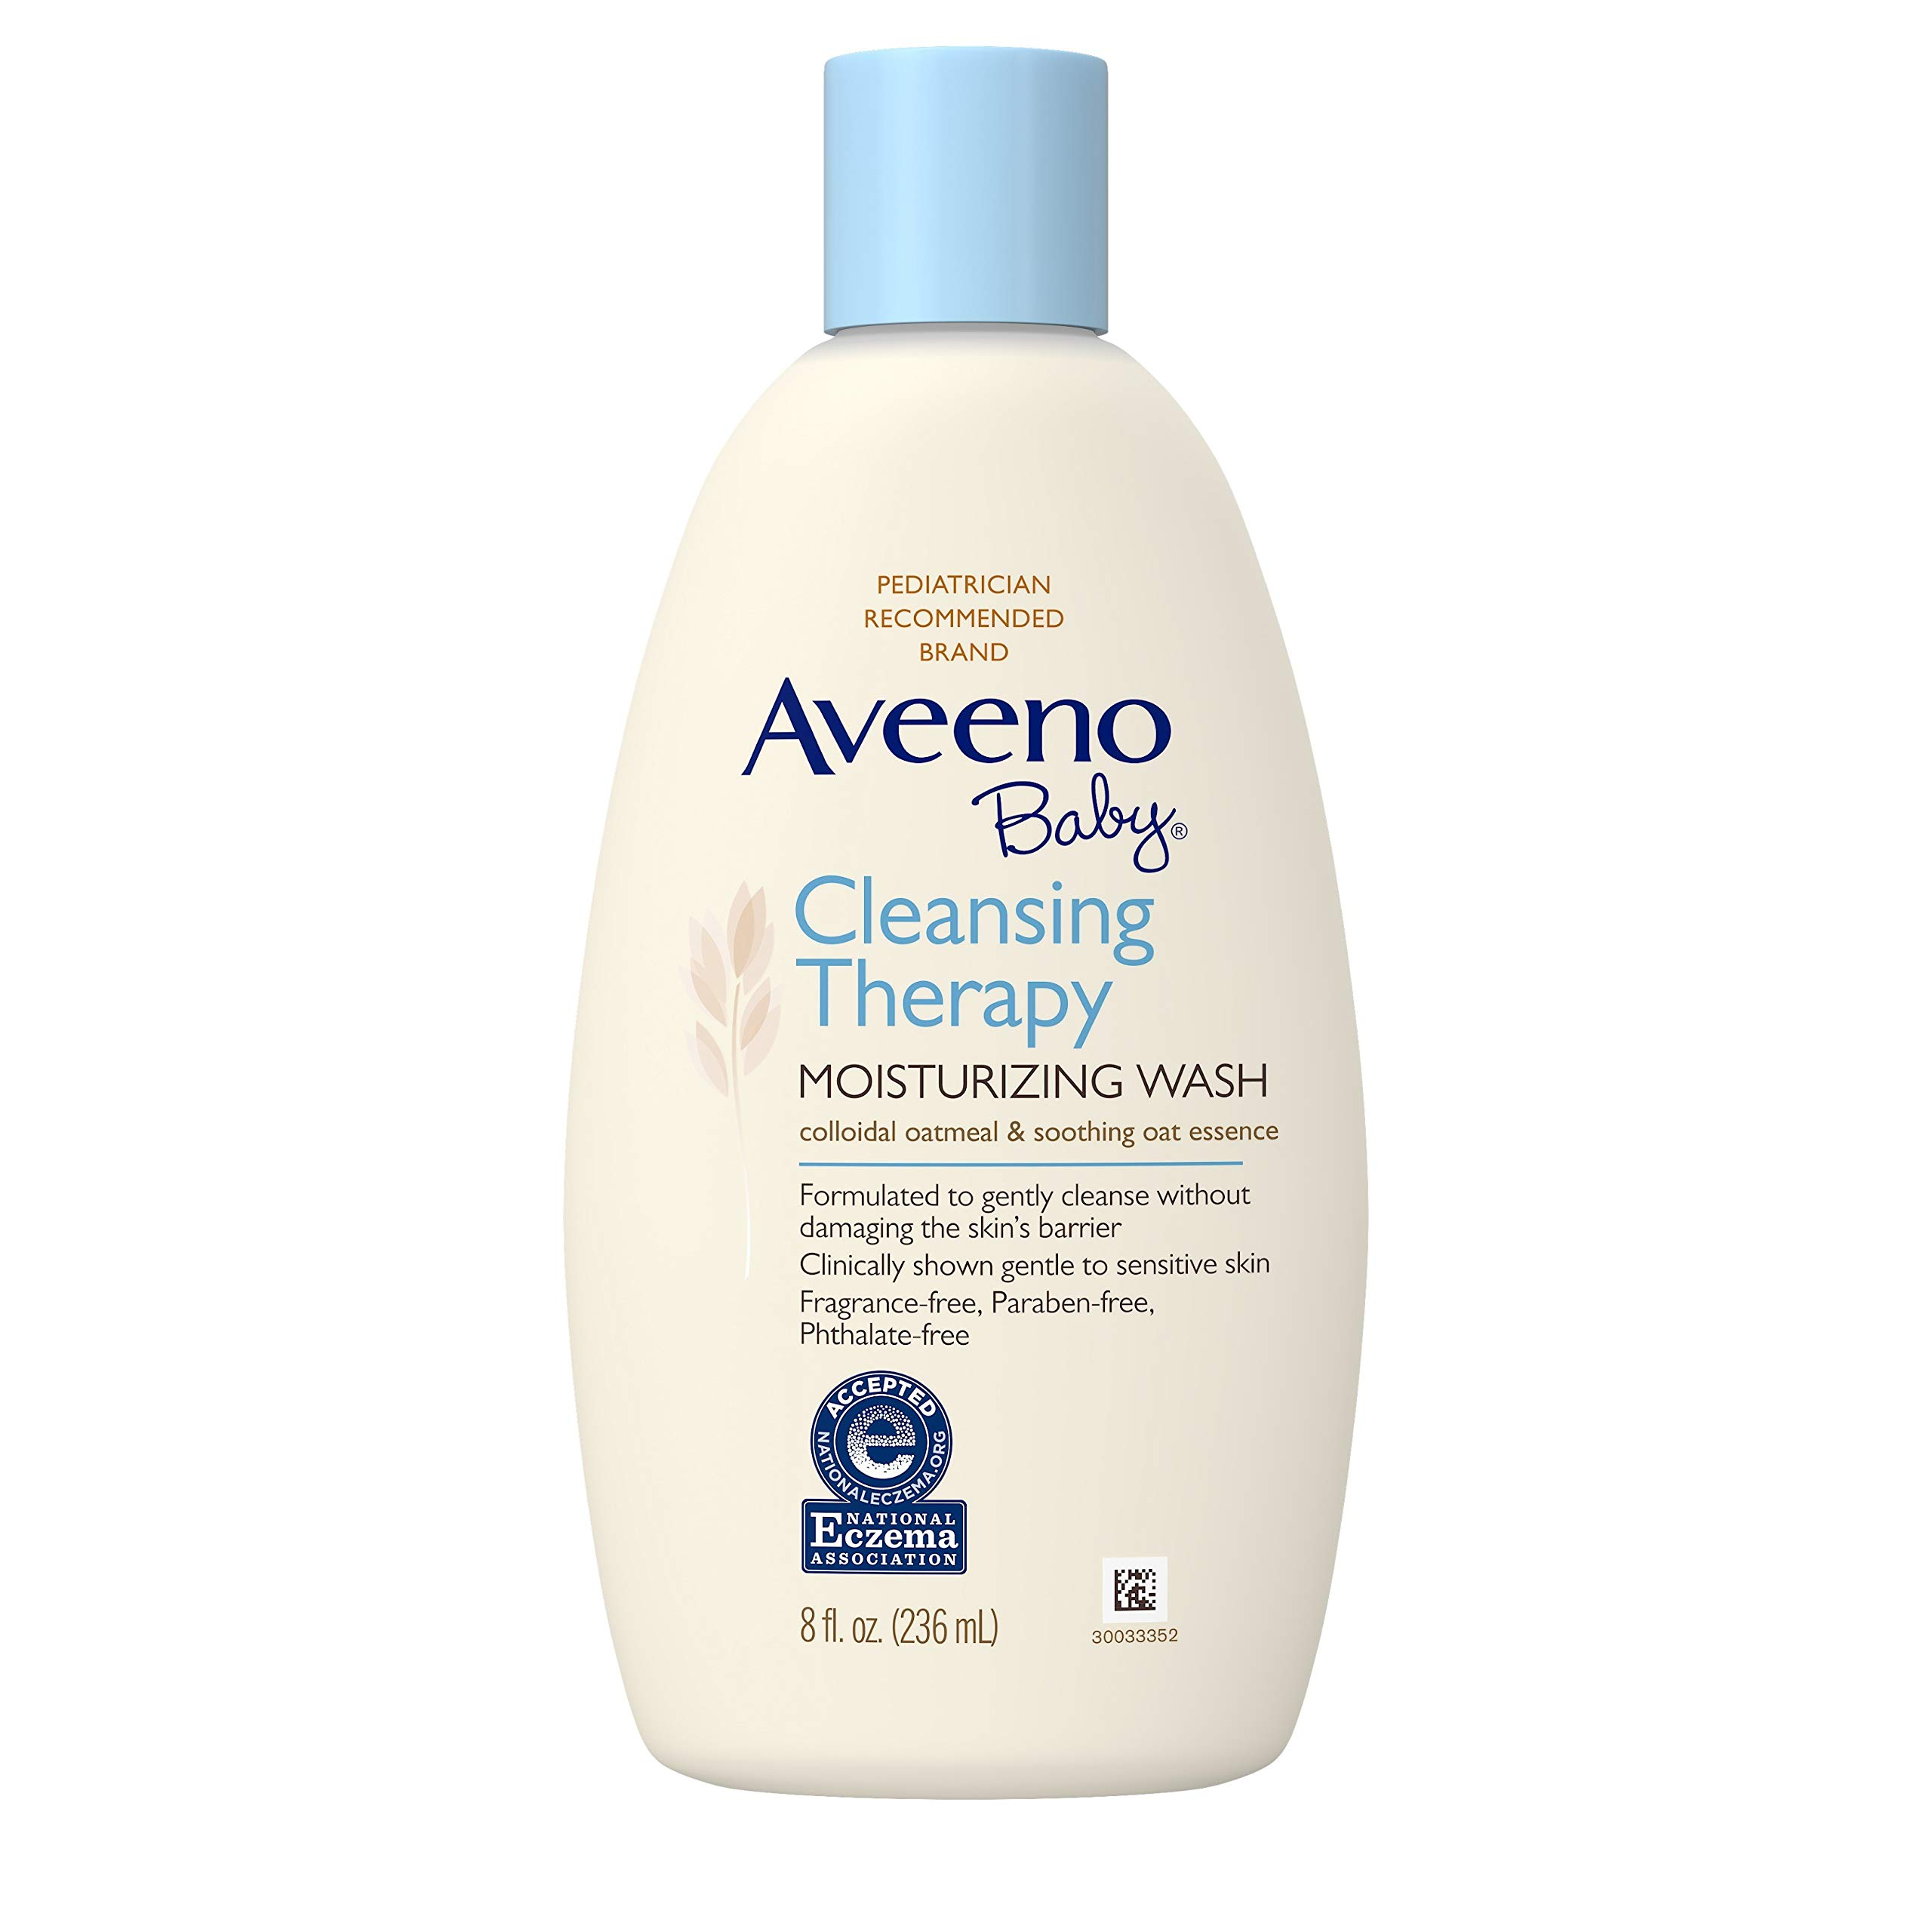 Aveeno Baby Cleansing Therapy Moisturizing Wash, Natural Colloidal Oatmeal, 8 fl. oz